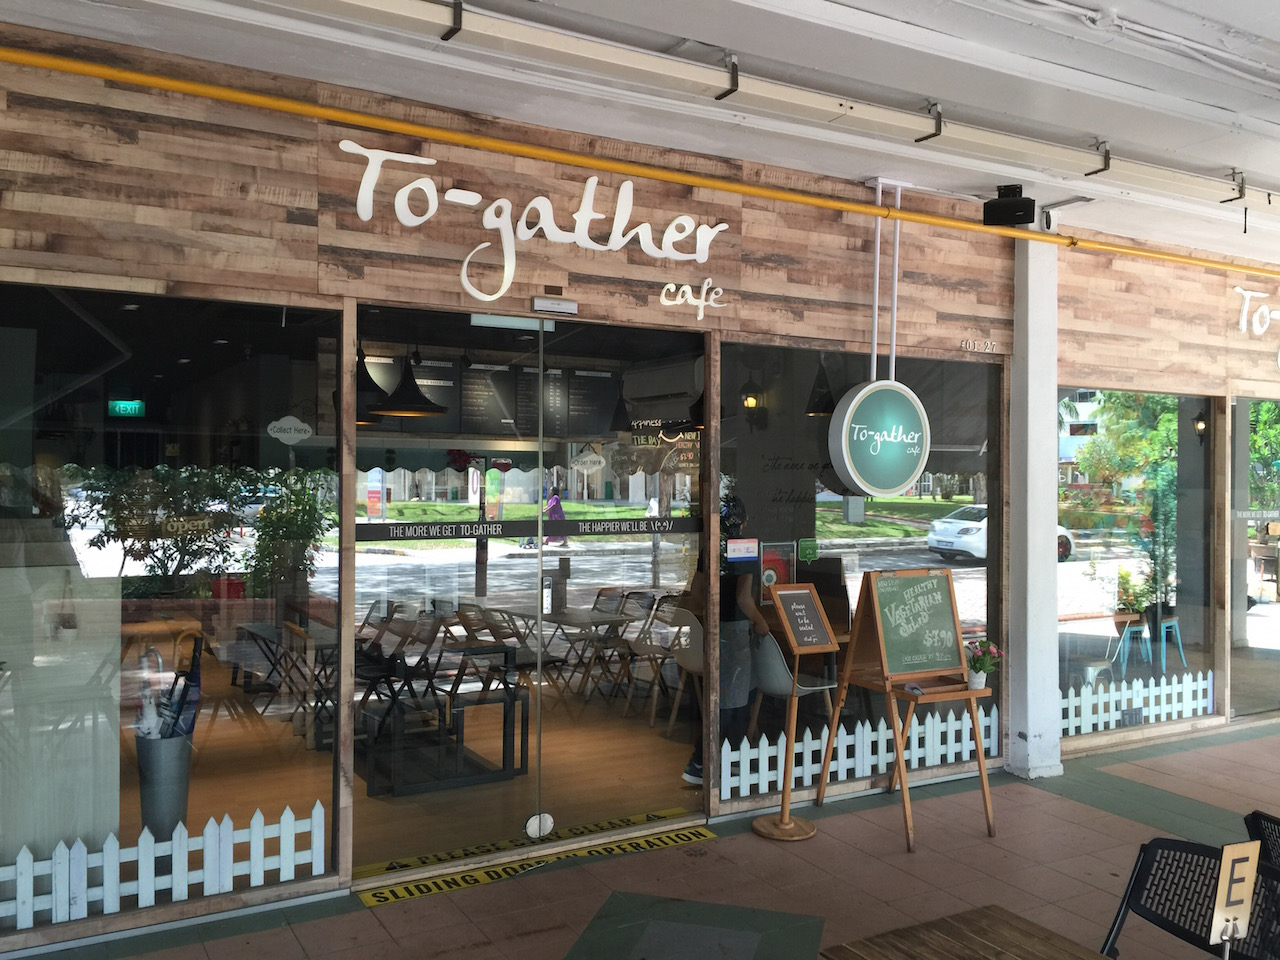 To-gather cafe at 84 Bedok North street 4